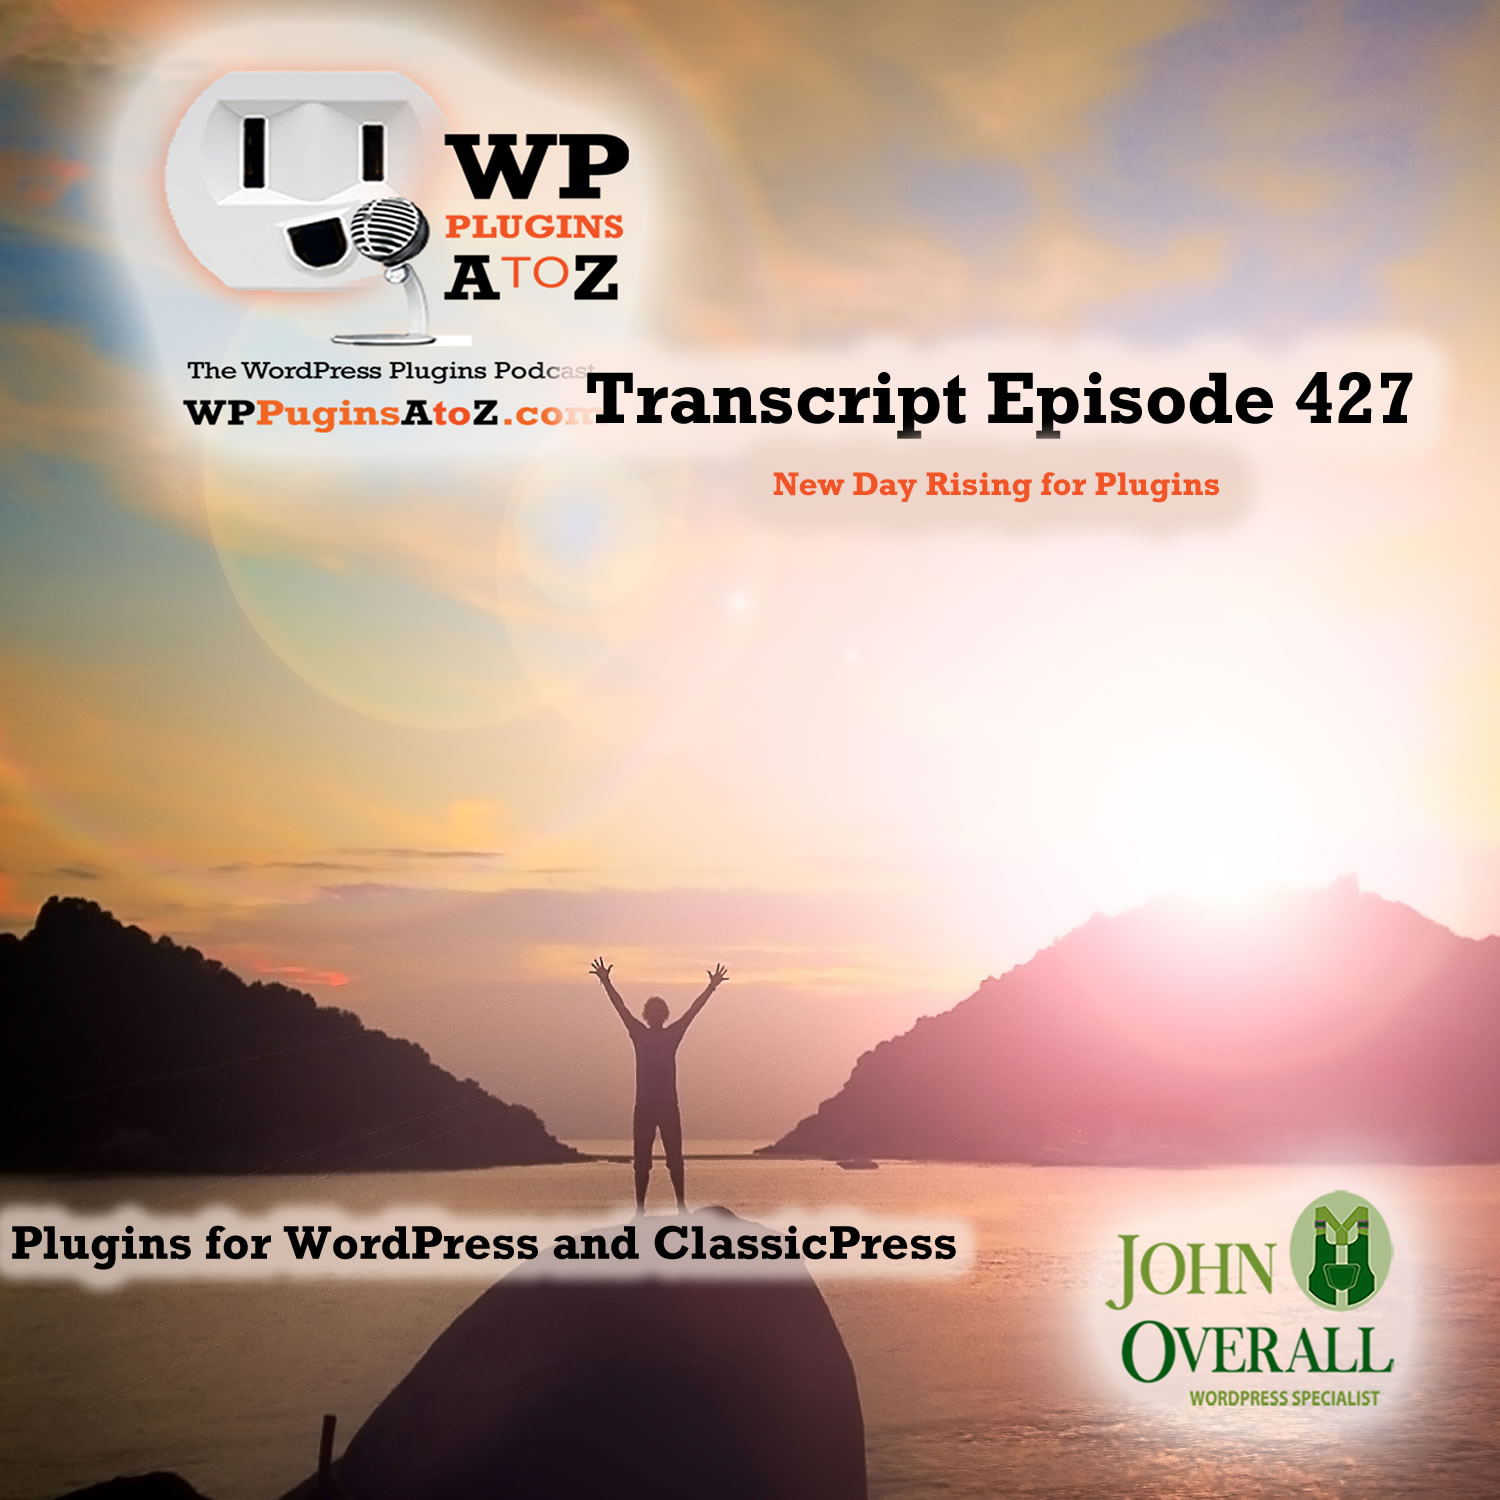 It's Episode 427 and I've got plugins for Live Chat Support, Check Abandoned Plugins, Code Development and ClassicPress Options, all coming up on WordPress Plugins A-Z!